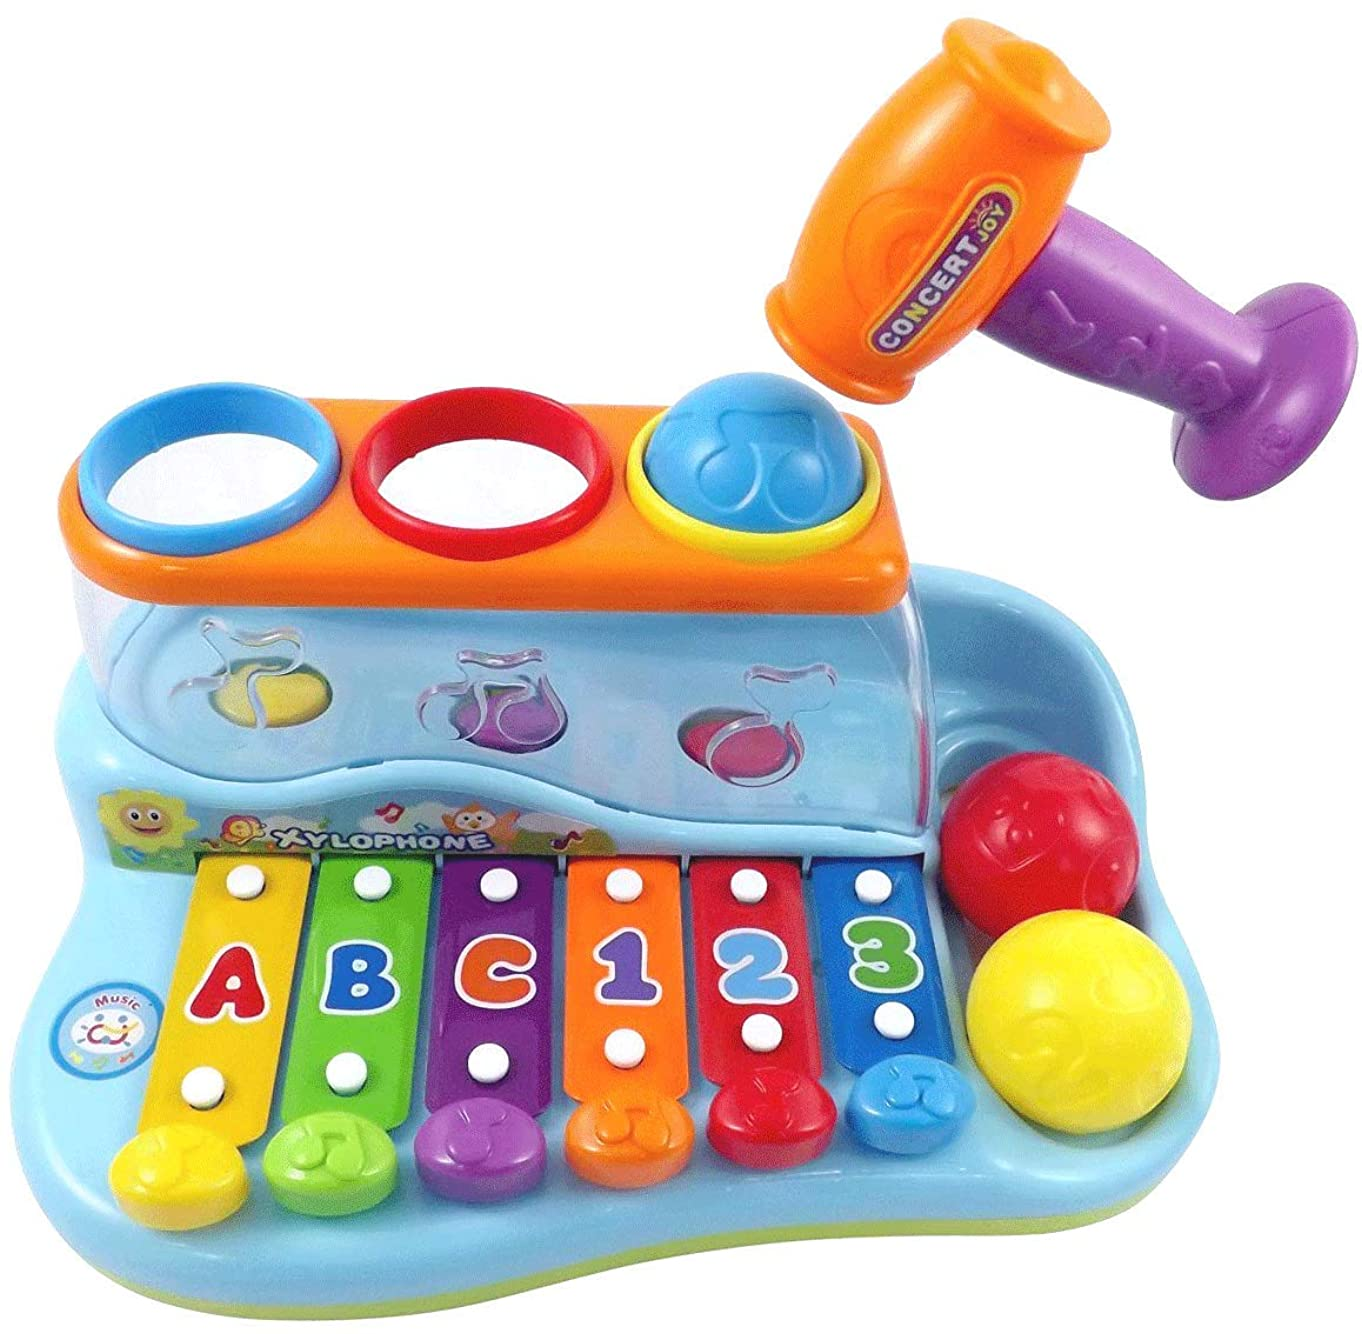 PowerTRC Rainbow Xylophone - Pounding Bench for Kids with Balls and Hammer